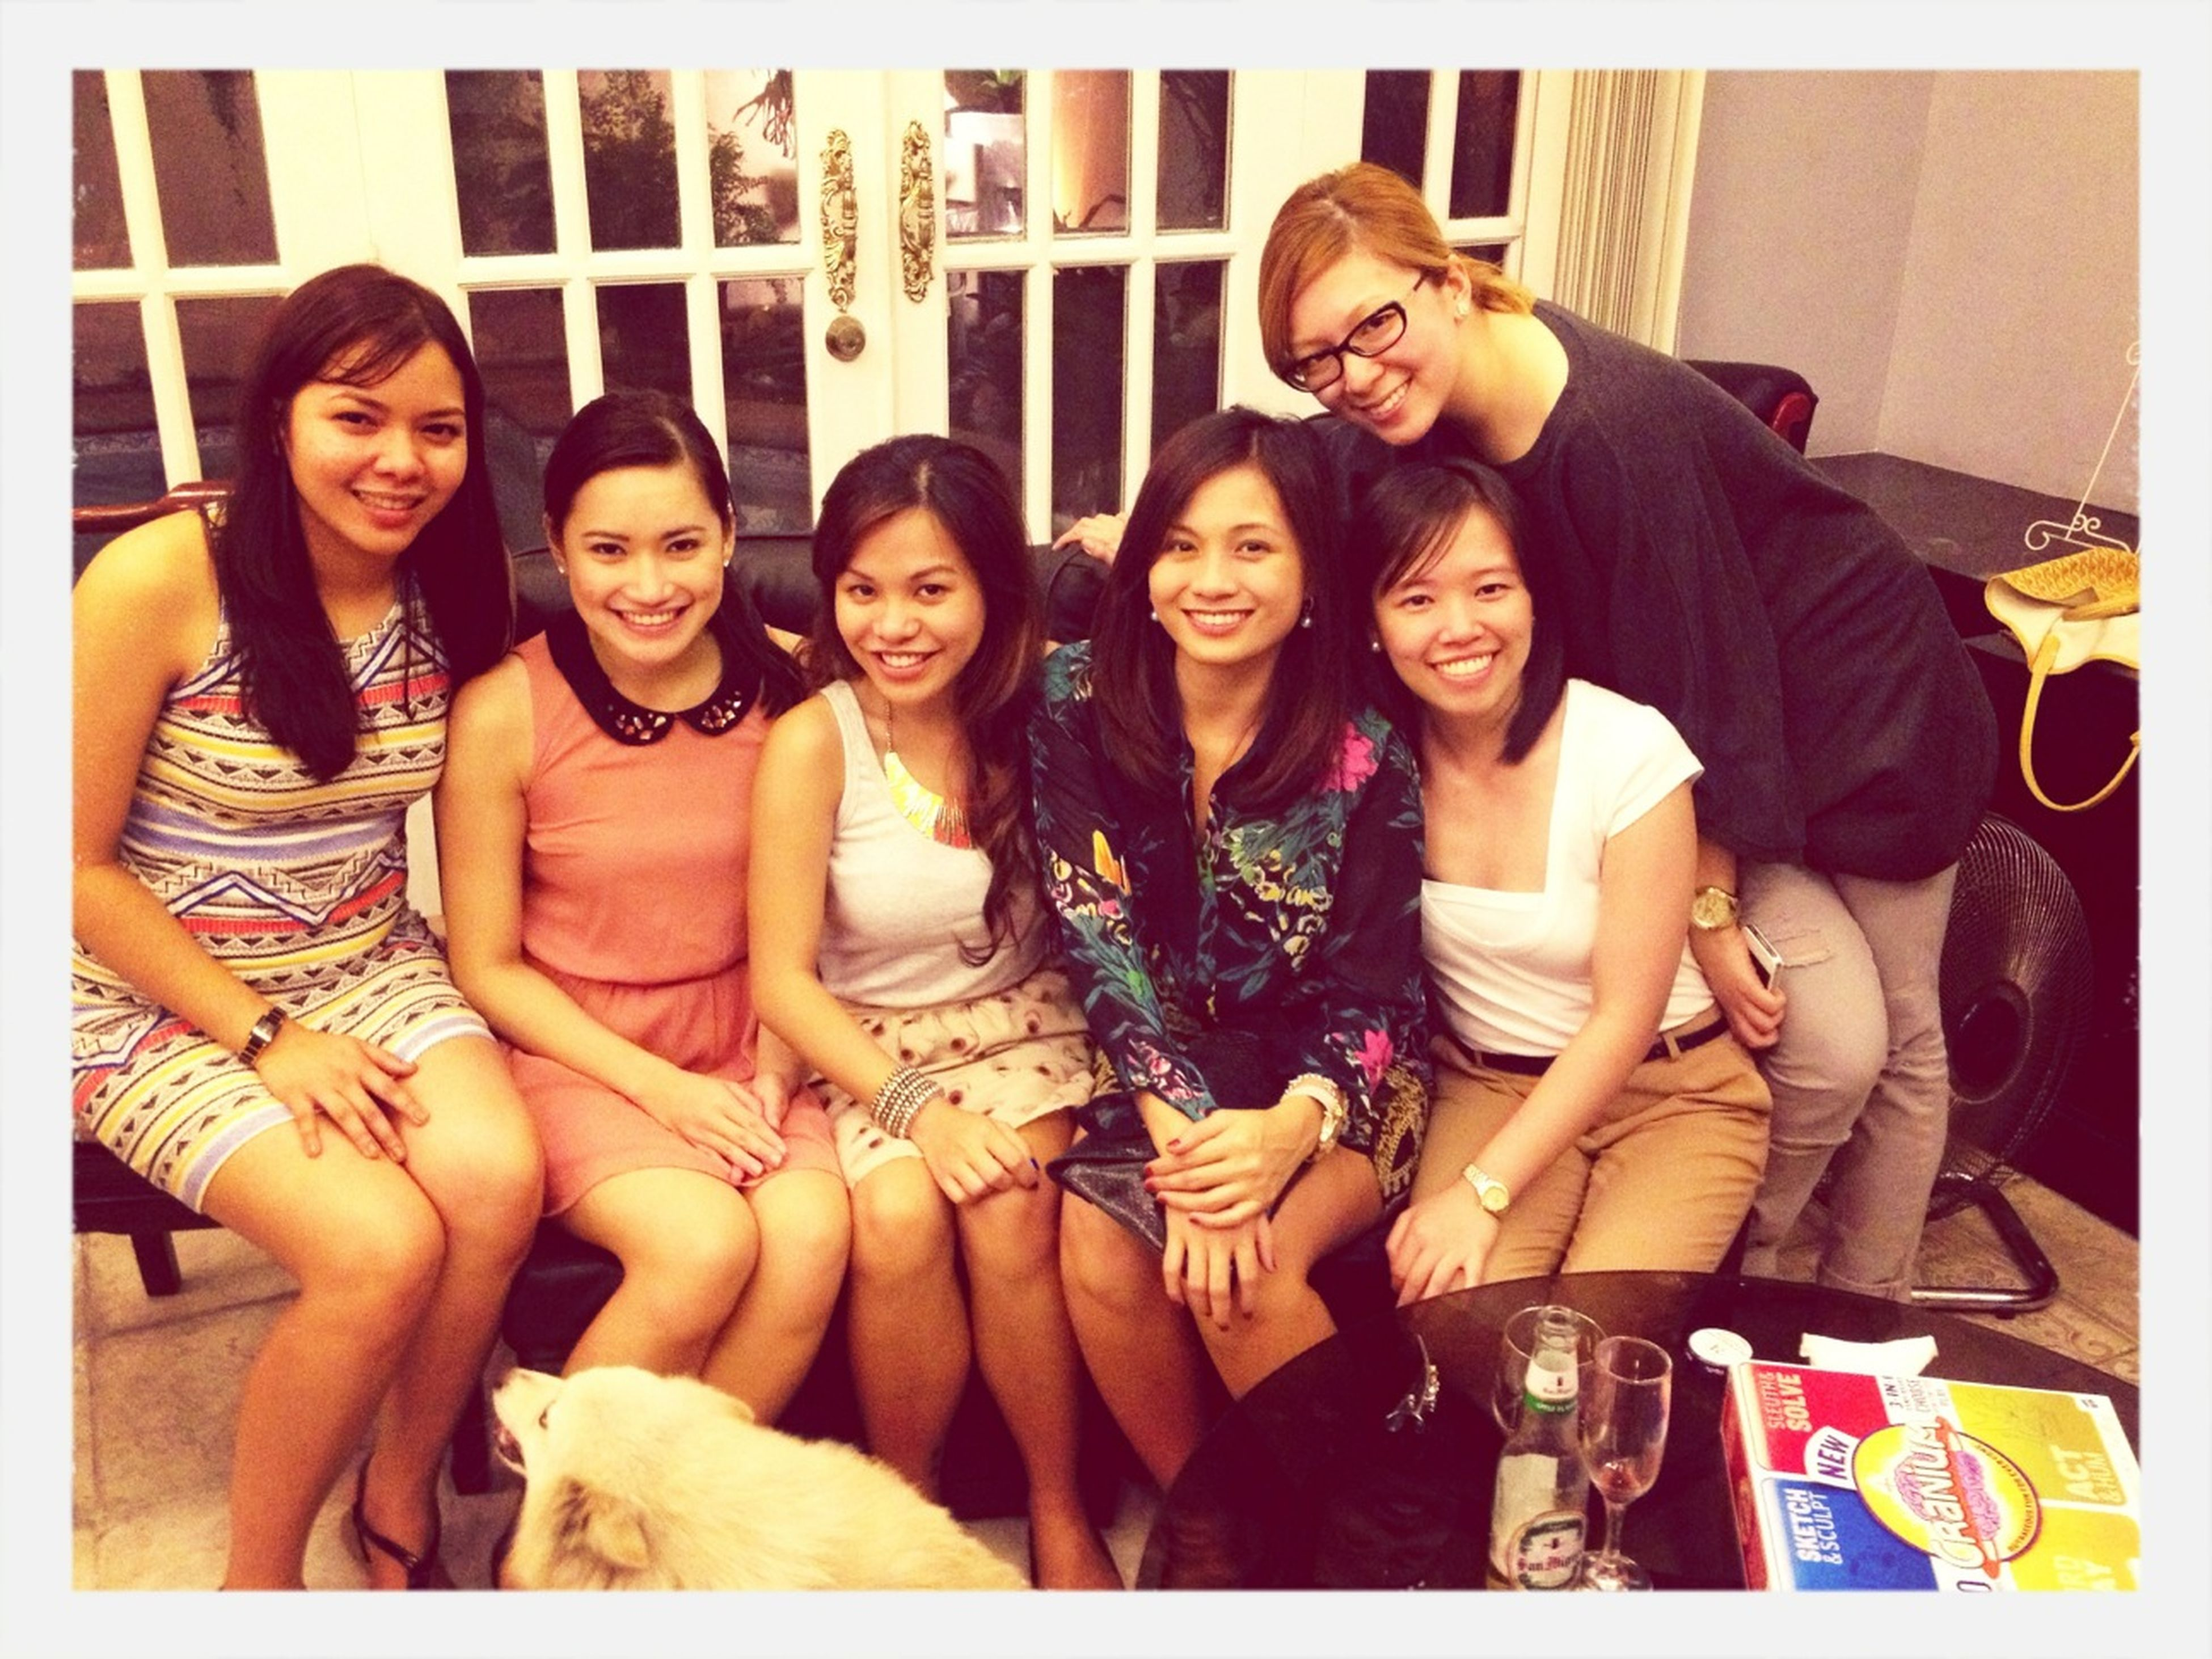 Dianne's Party